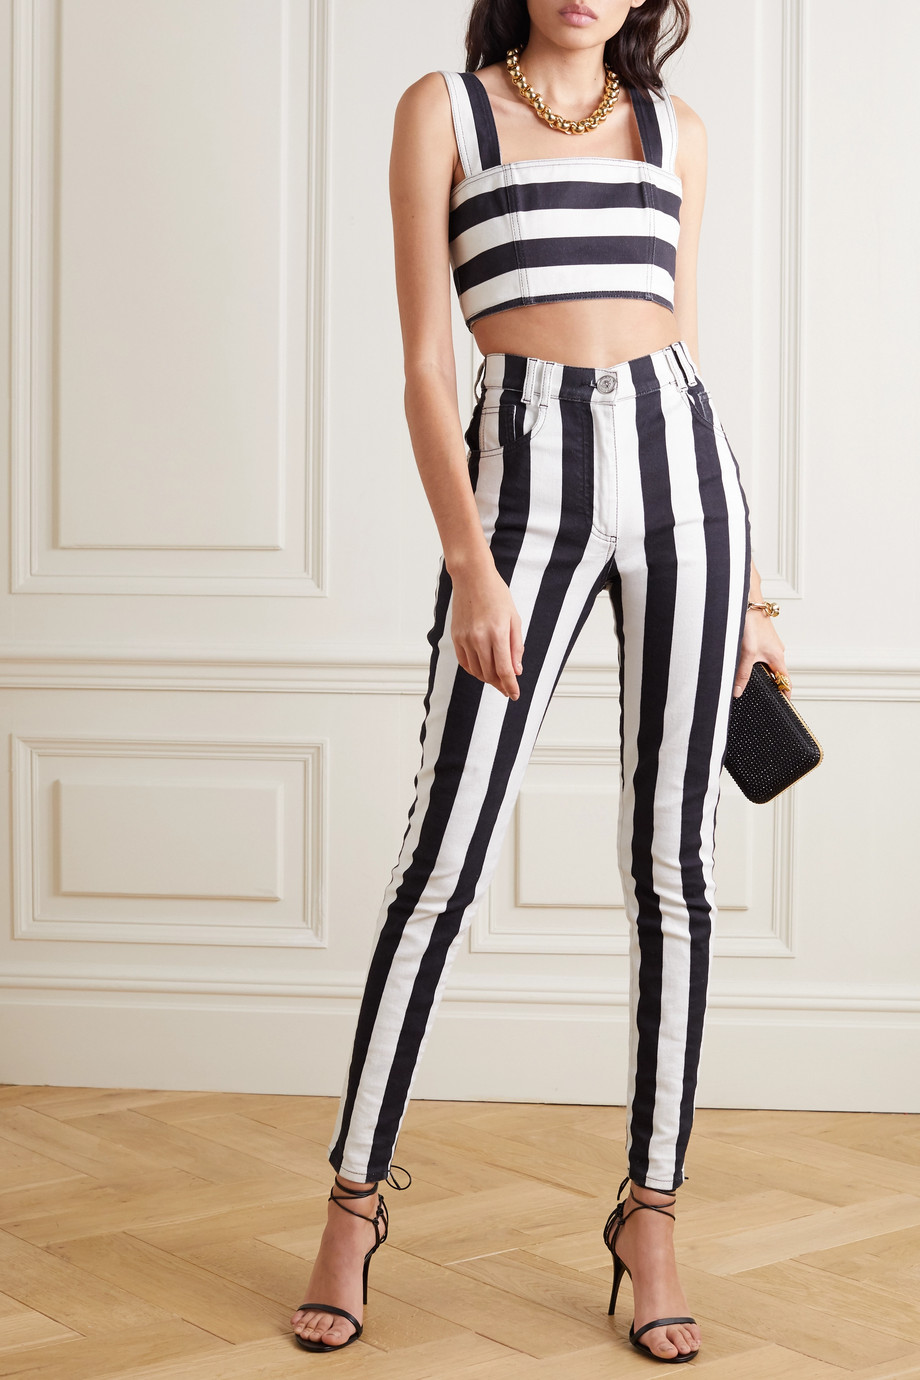 Balmain Cropped striped denim top